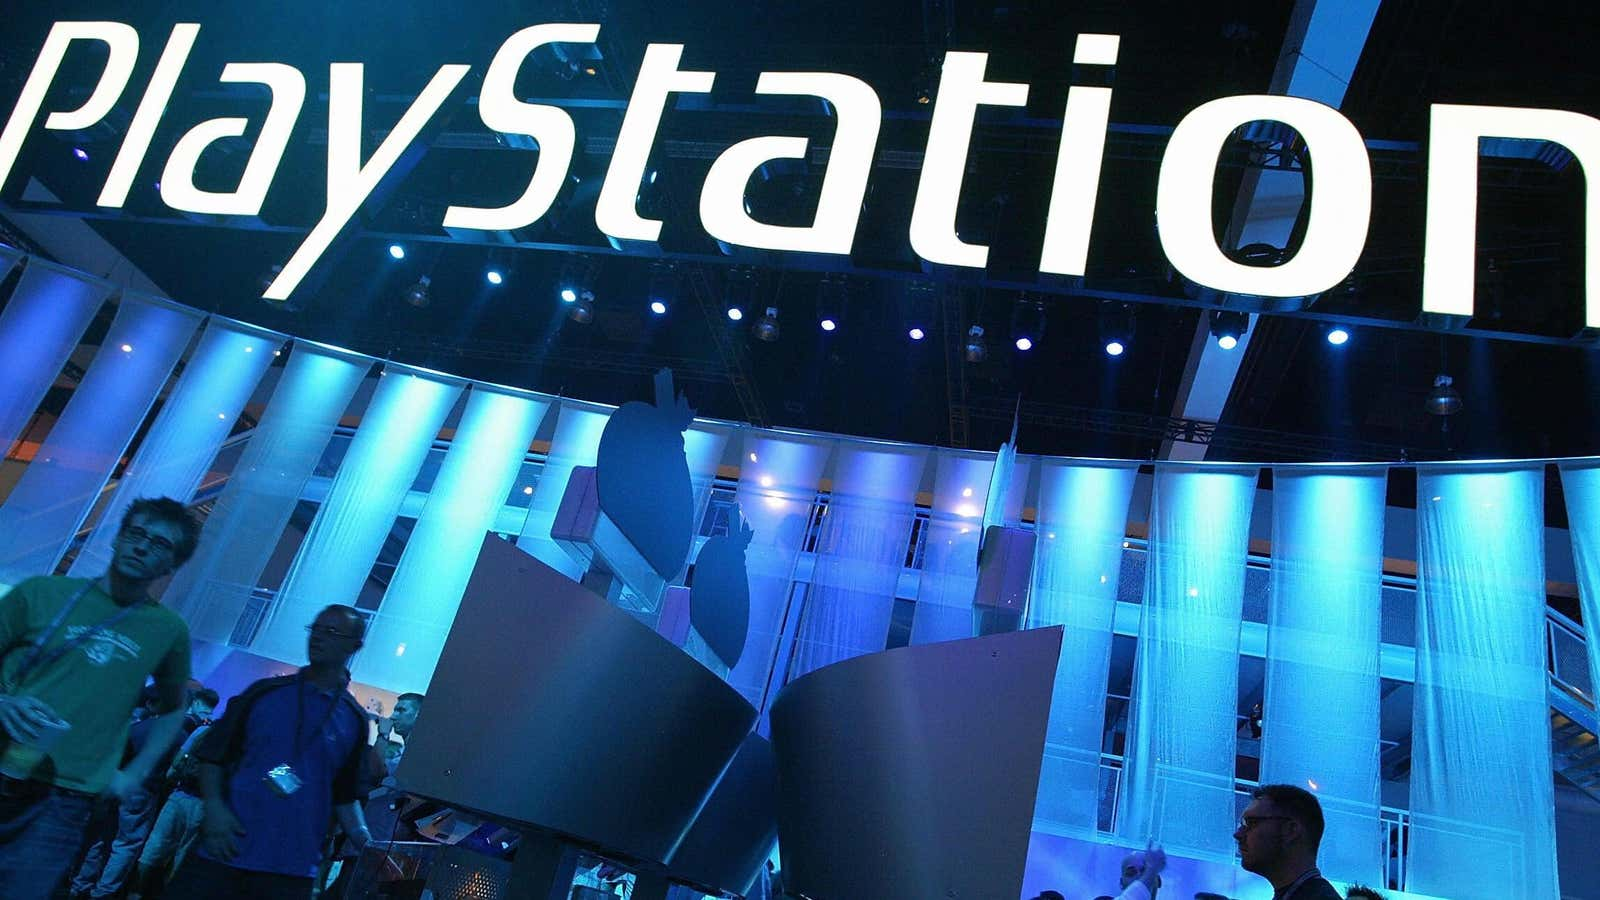 Playstation Network, Steam, Banks, and More Knocked Offline by Massive Internet Outage